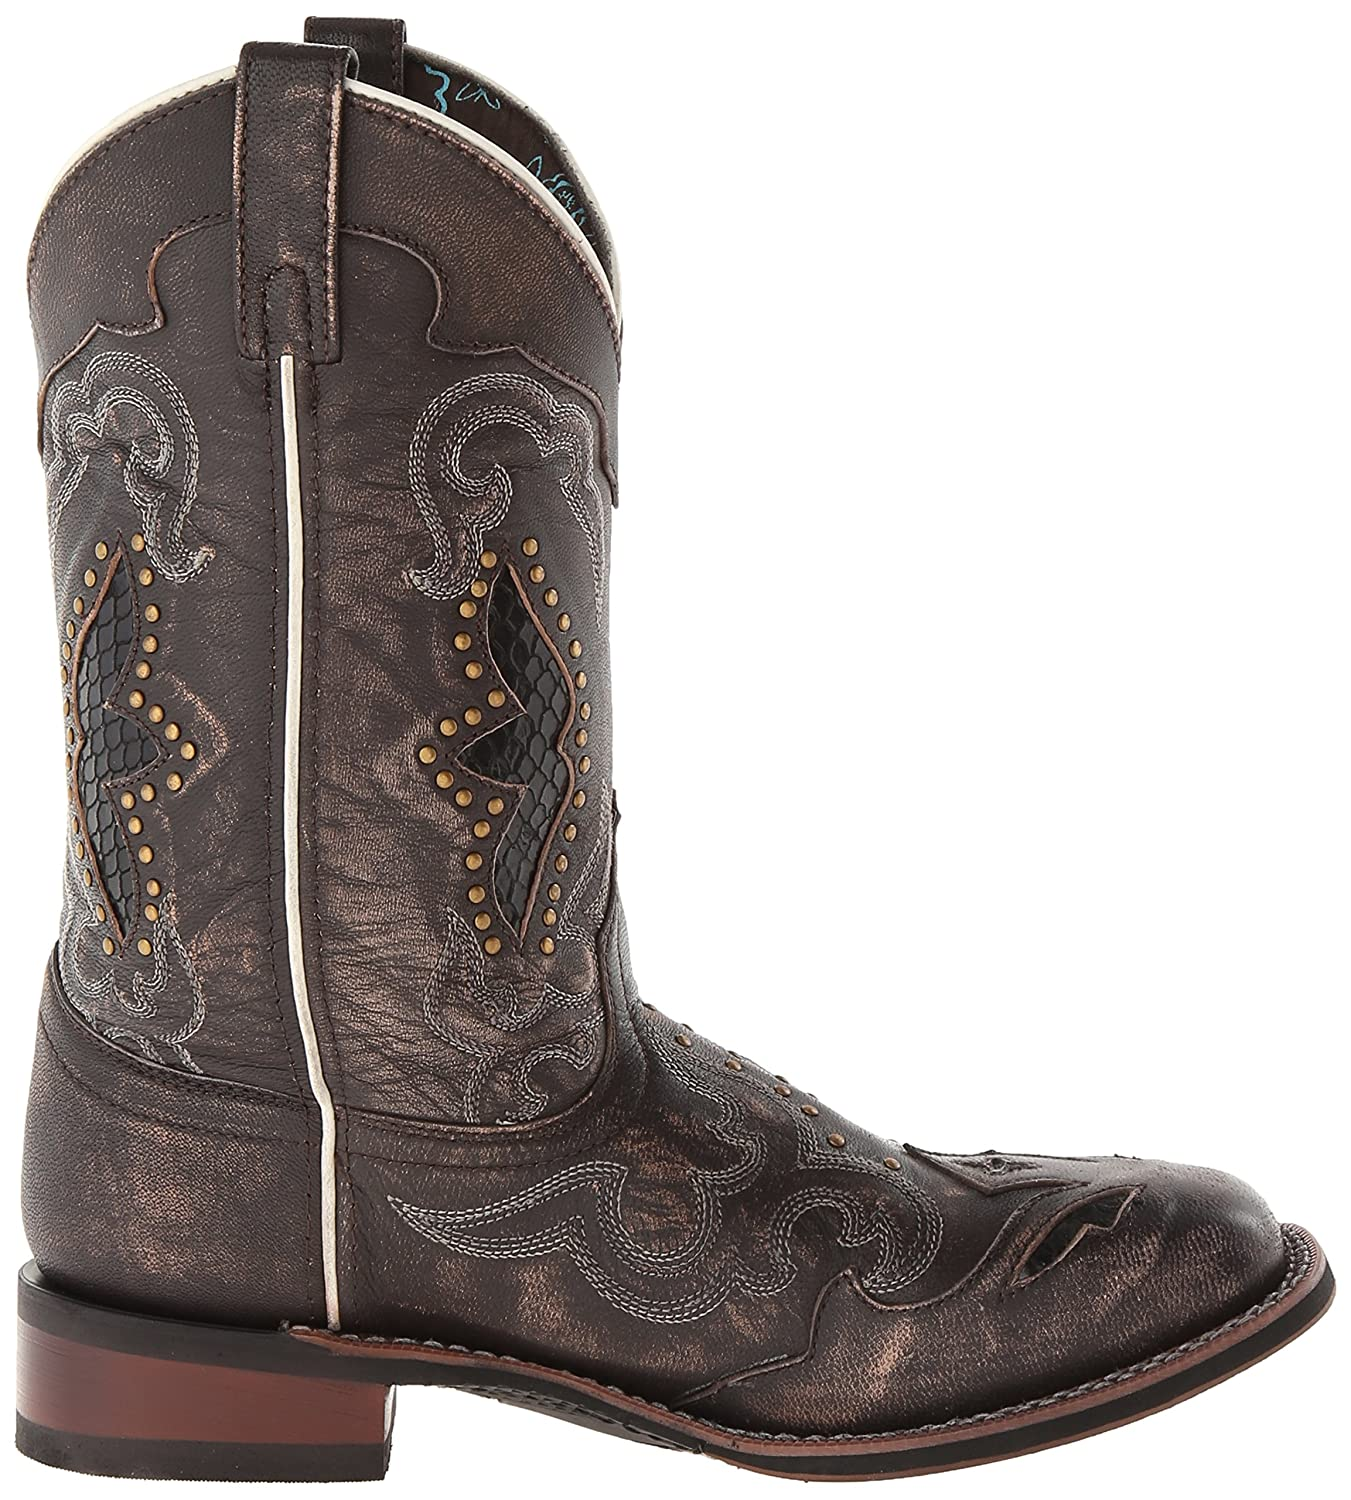 Laredo Women's Spellbound Western Boot B00ITCBCJY 8.5 B(M) US|Black/Tan